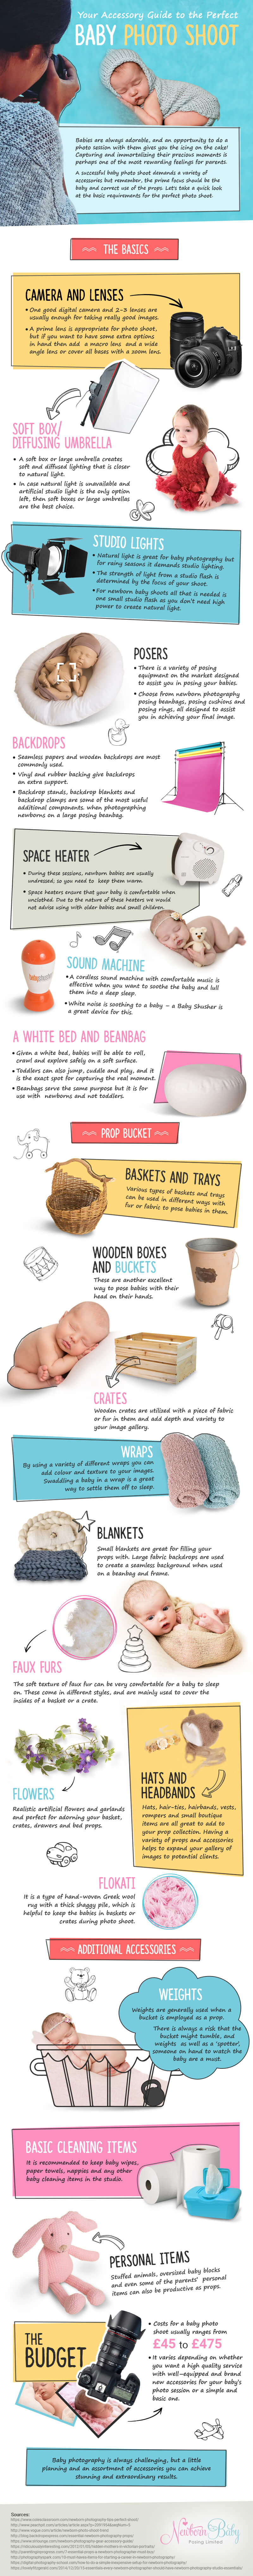 guide-to-the-perfect-baby-photo-shoot